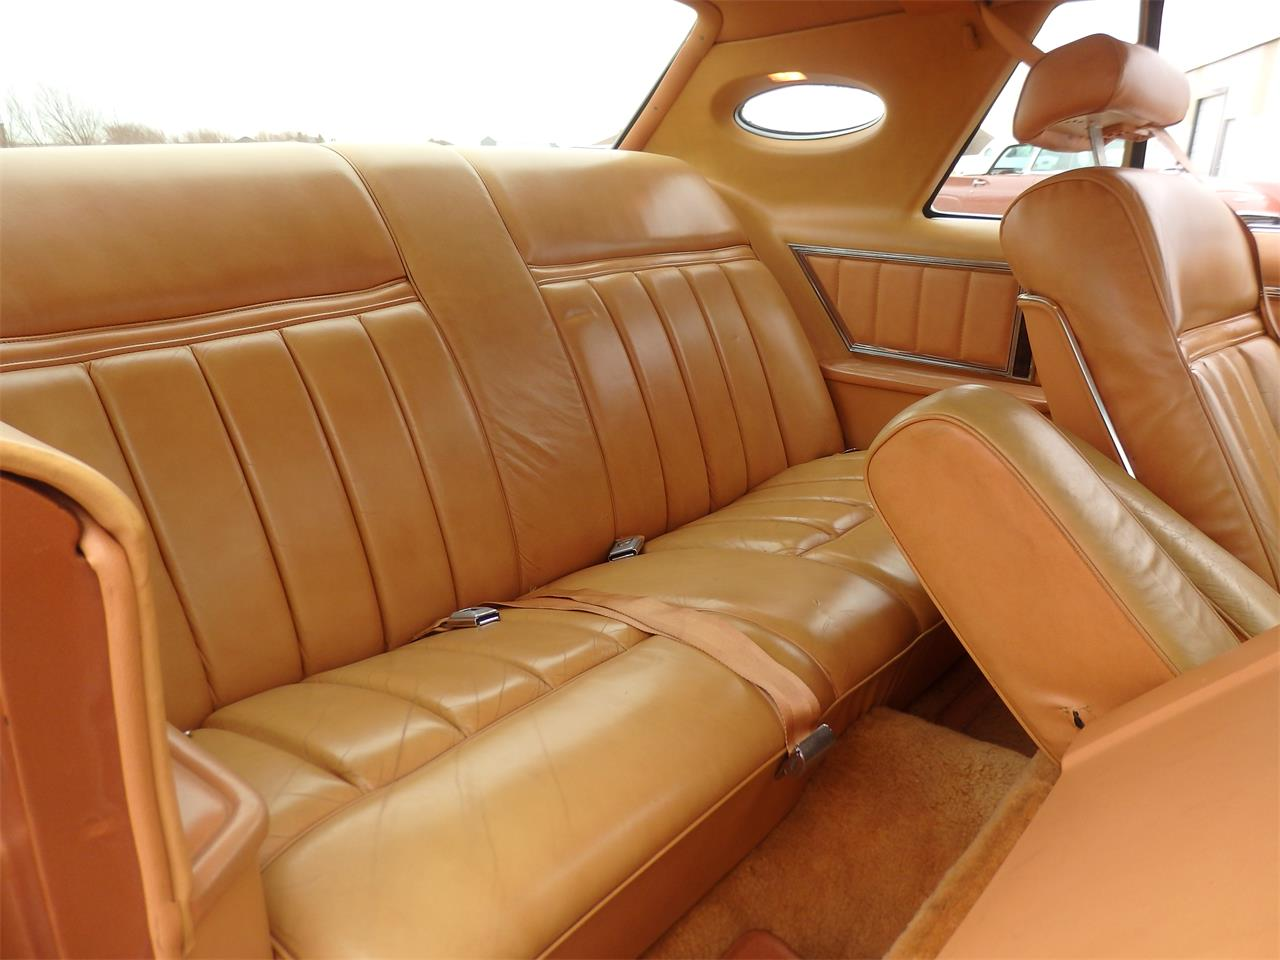 Large Picture of '78 Lincoln Continental Mark V located in Amarillo Texas Offered by a Private Seller - GFR6